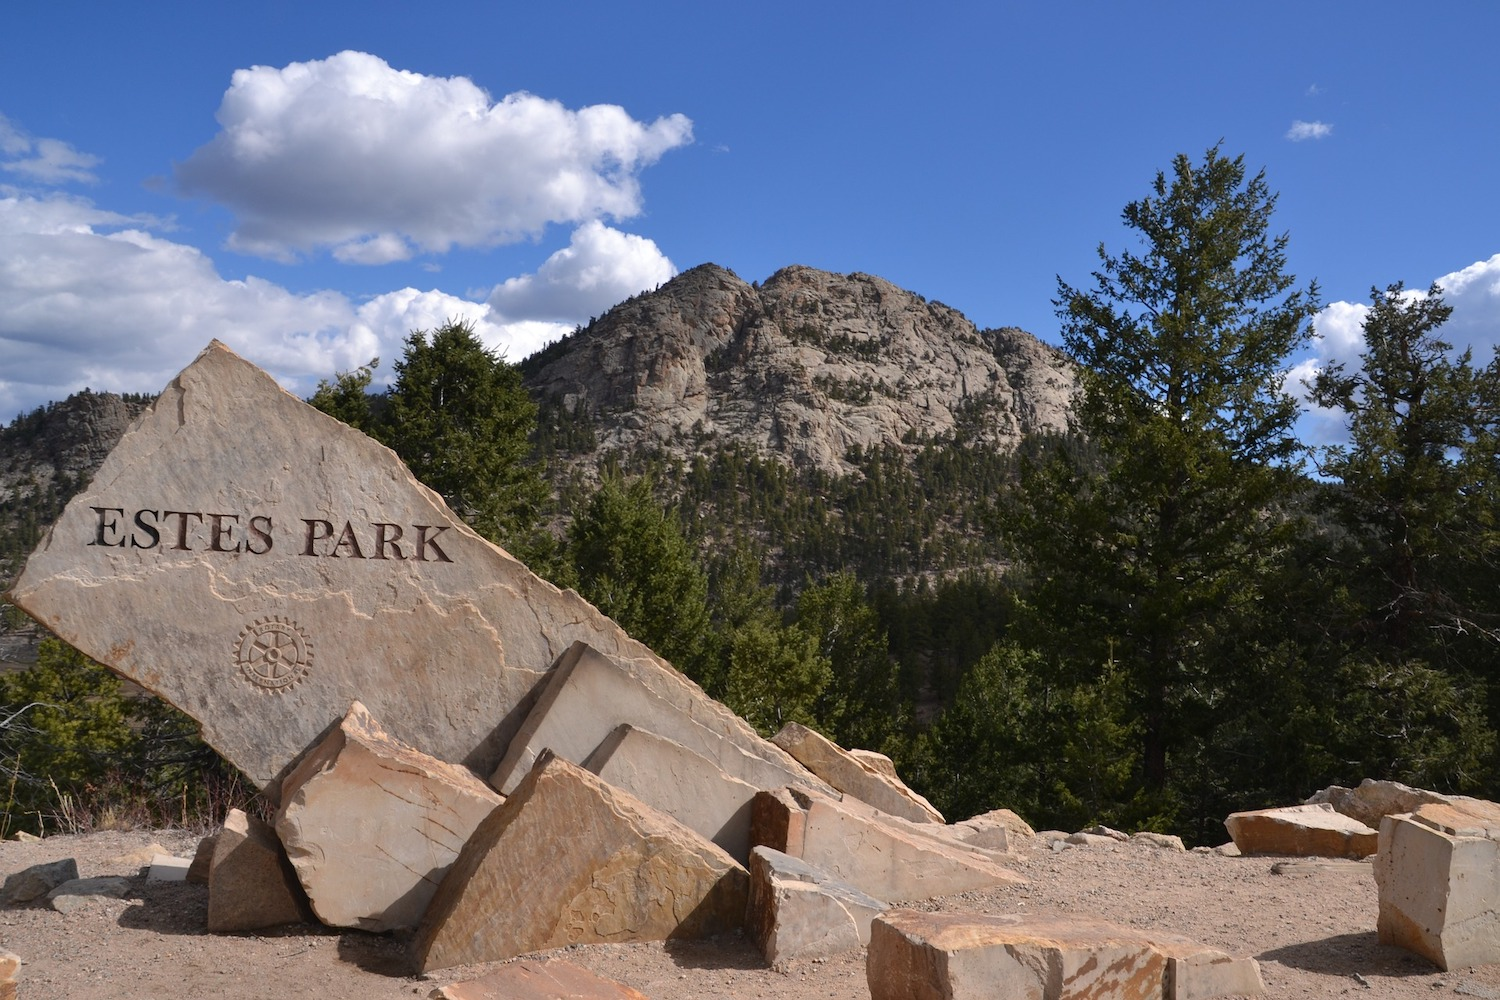 One Day in Rocky Mountain National Park - Estes Park